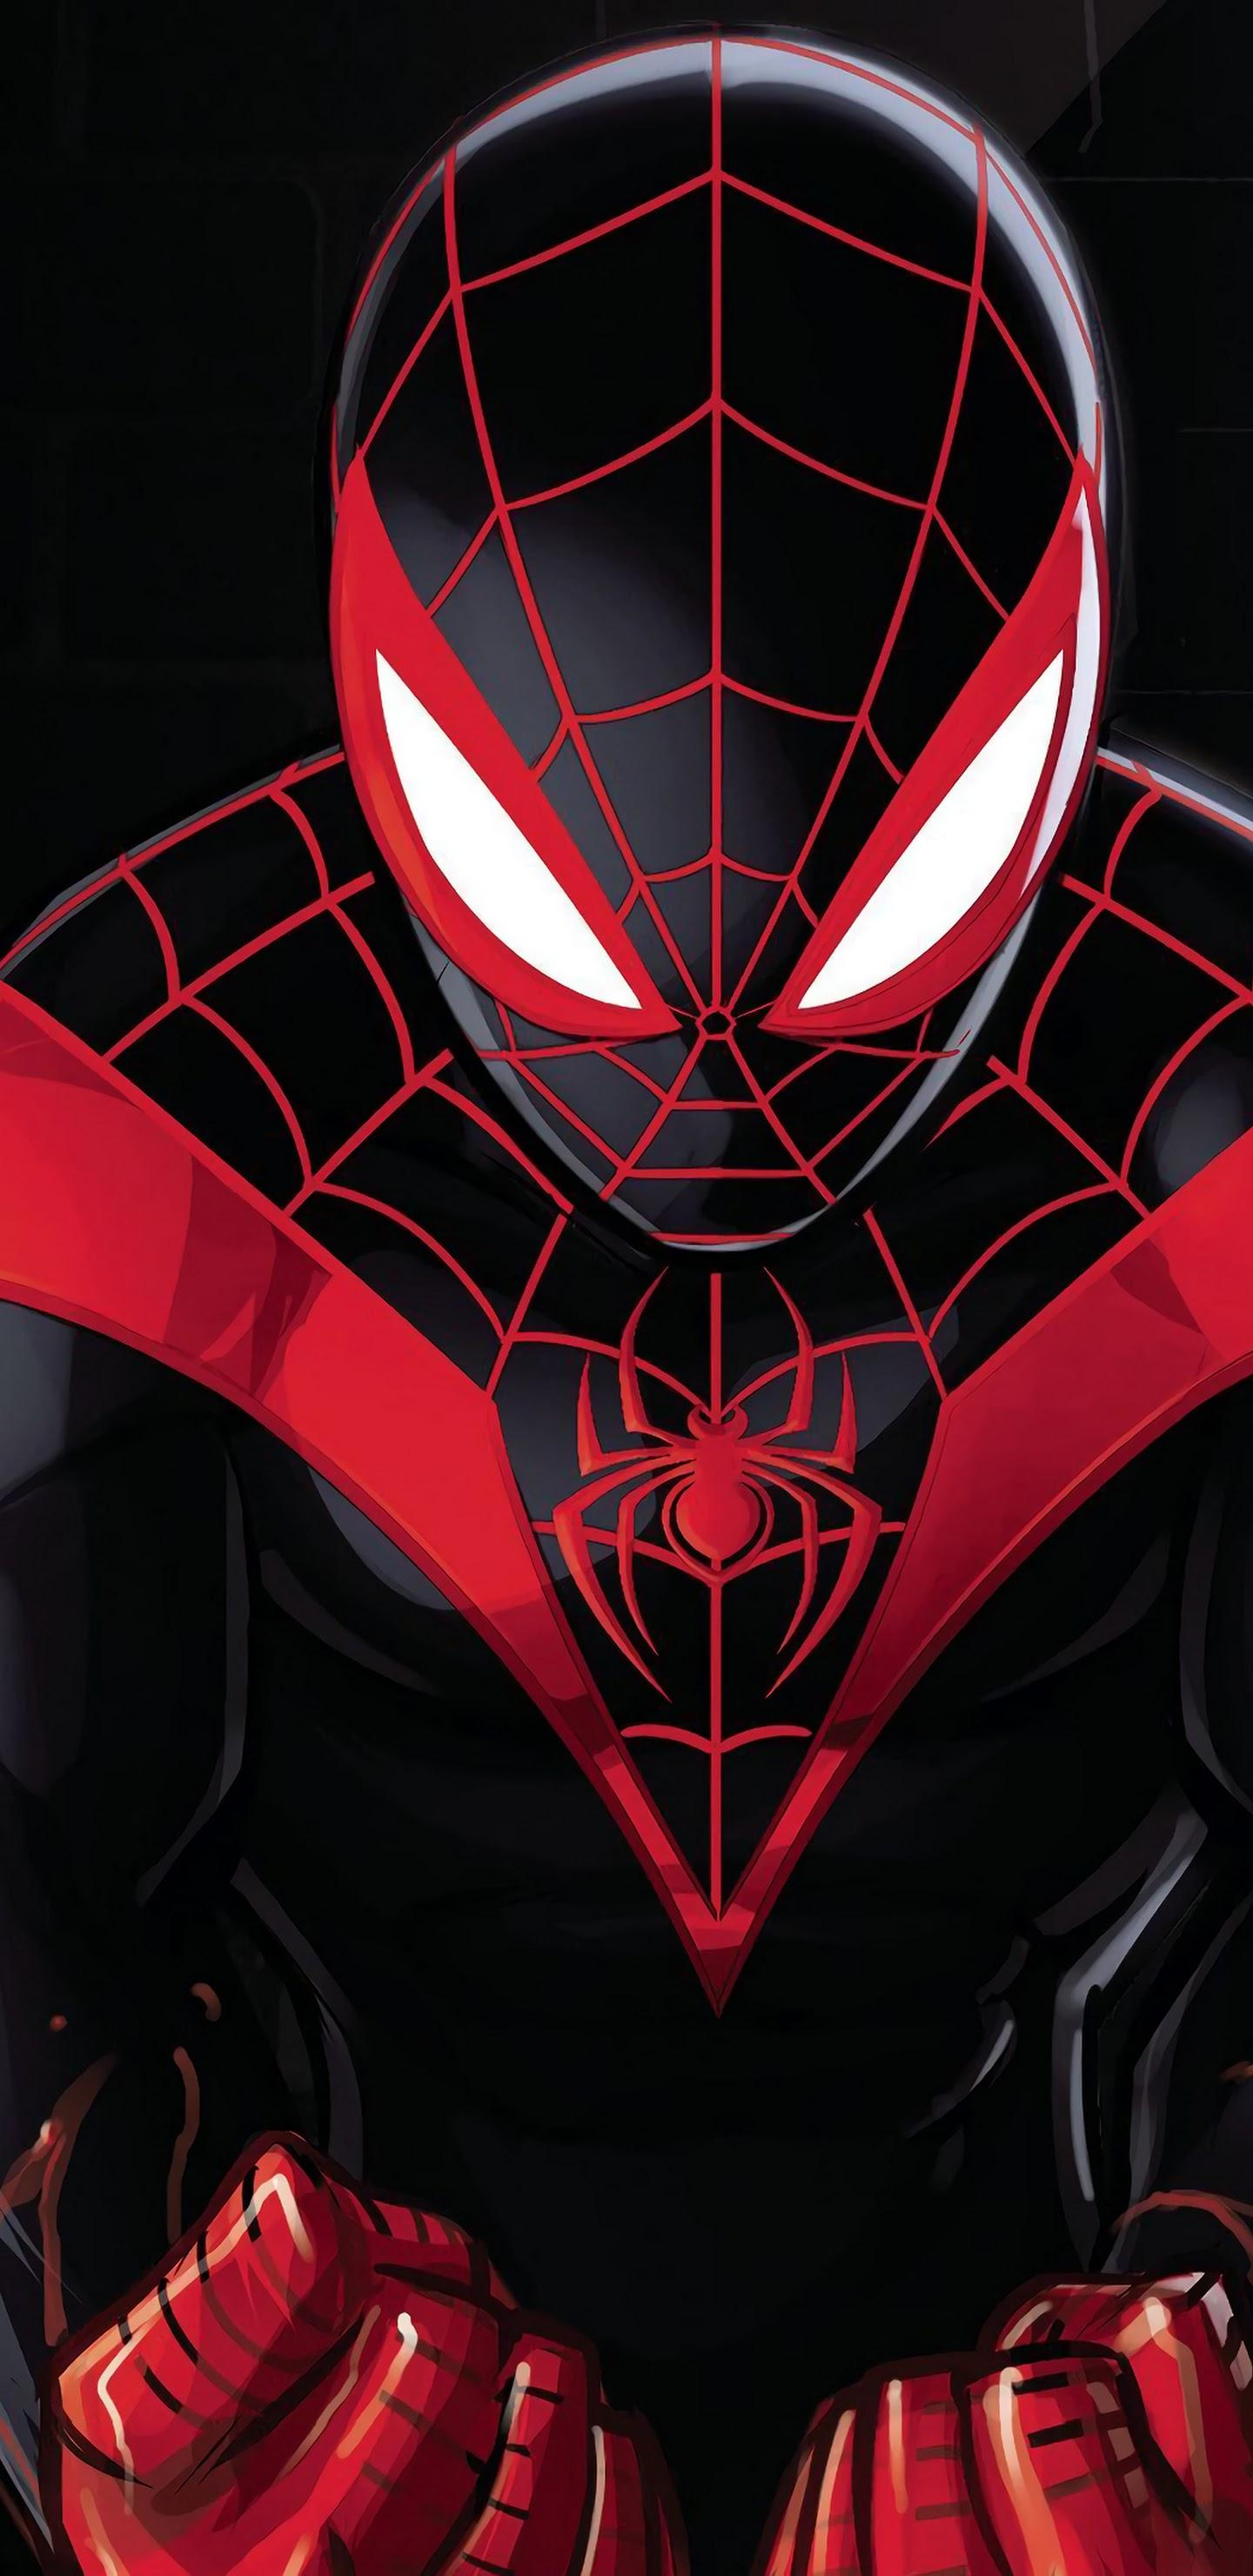 Miles Morales Spider Man Wallpapers Wallpaper Cave And you can also share cool apps to your friends. miles morales spider man wallpapers